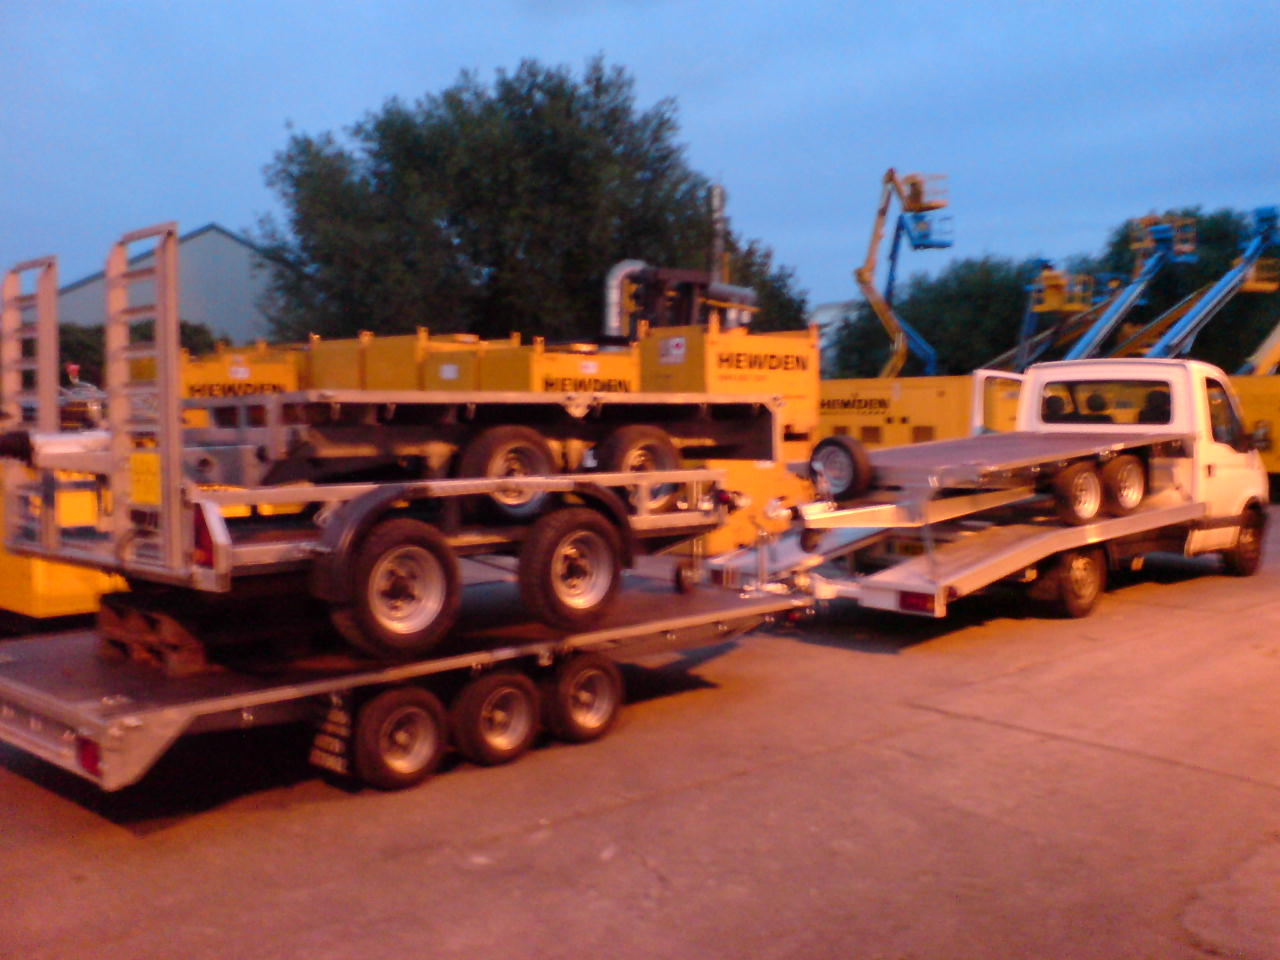 Four Flatbed Trailers on Hire to Hewden PLC.